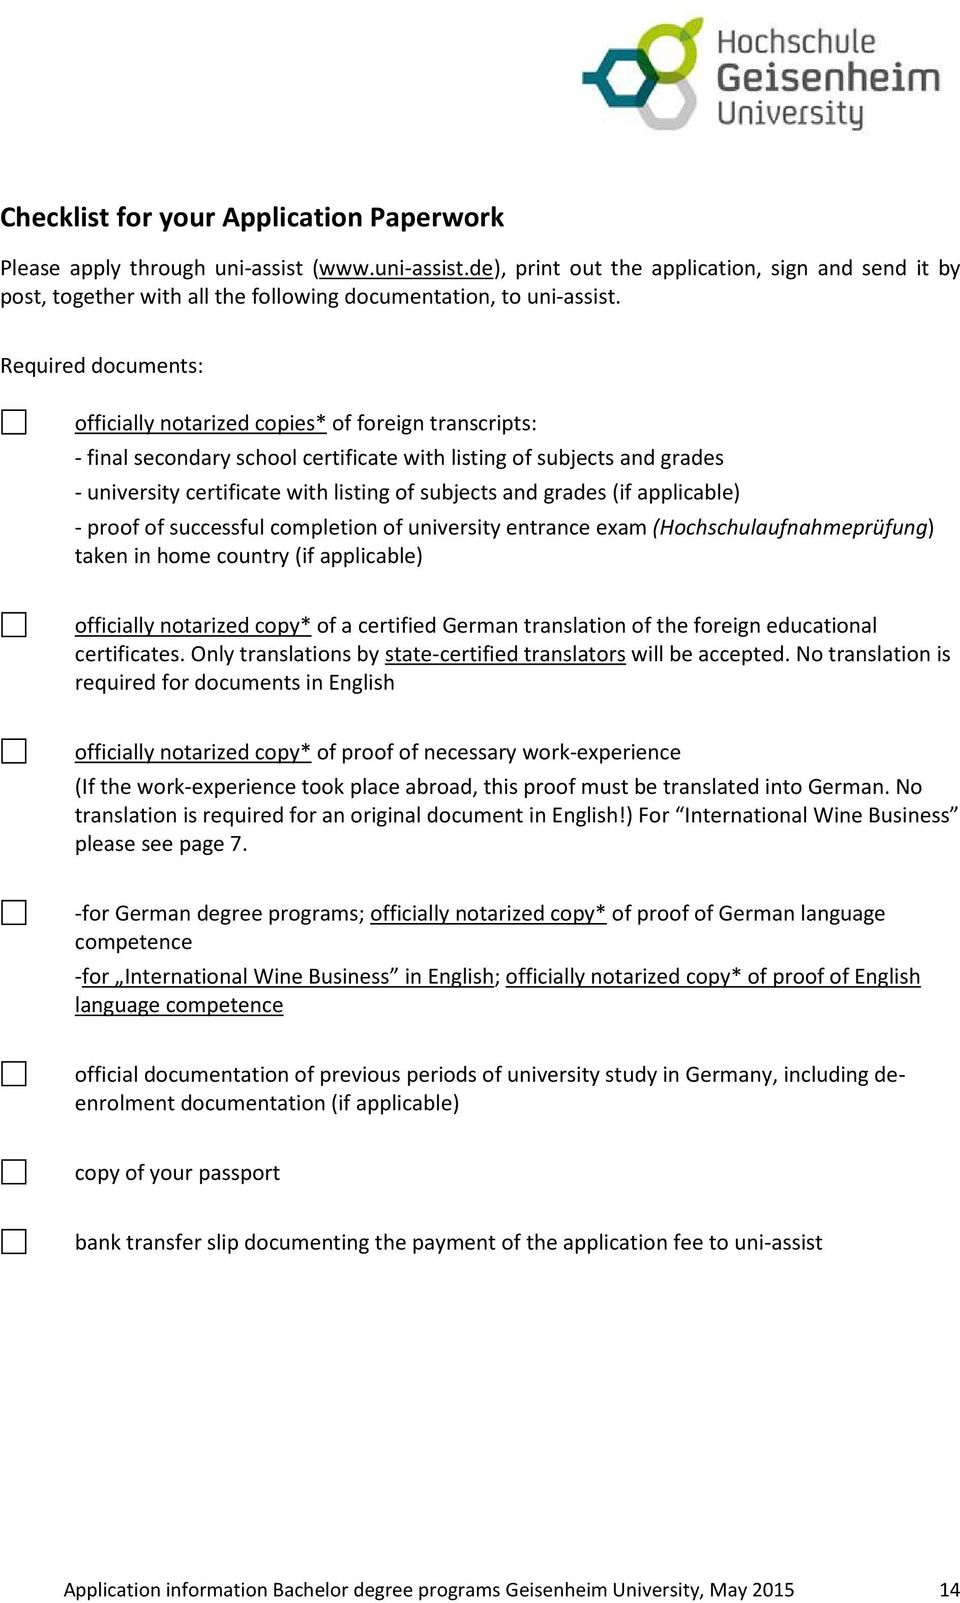 Application Information for Candidates with Foreign